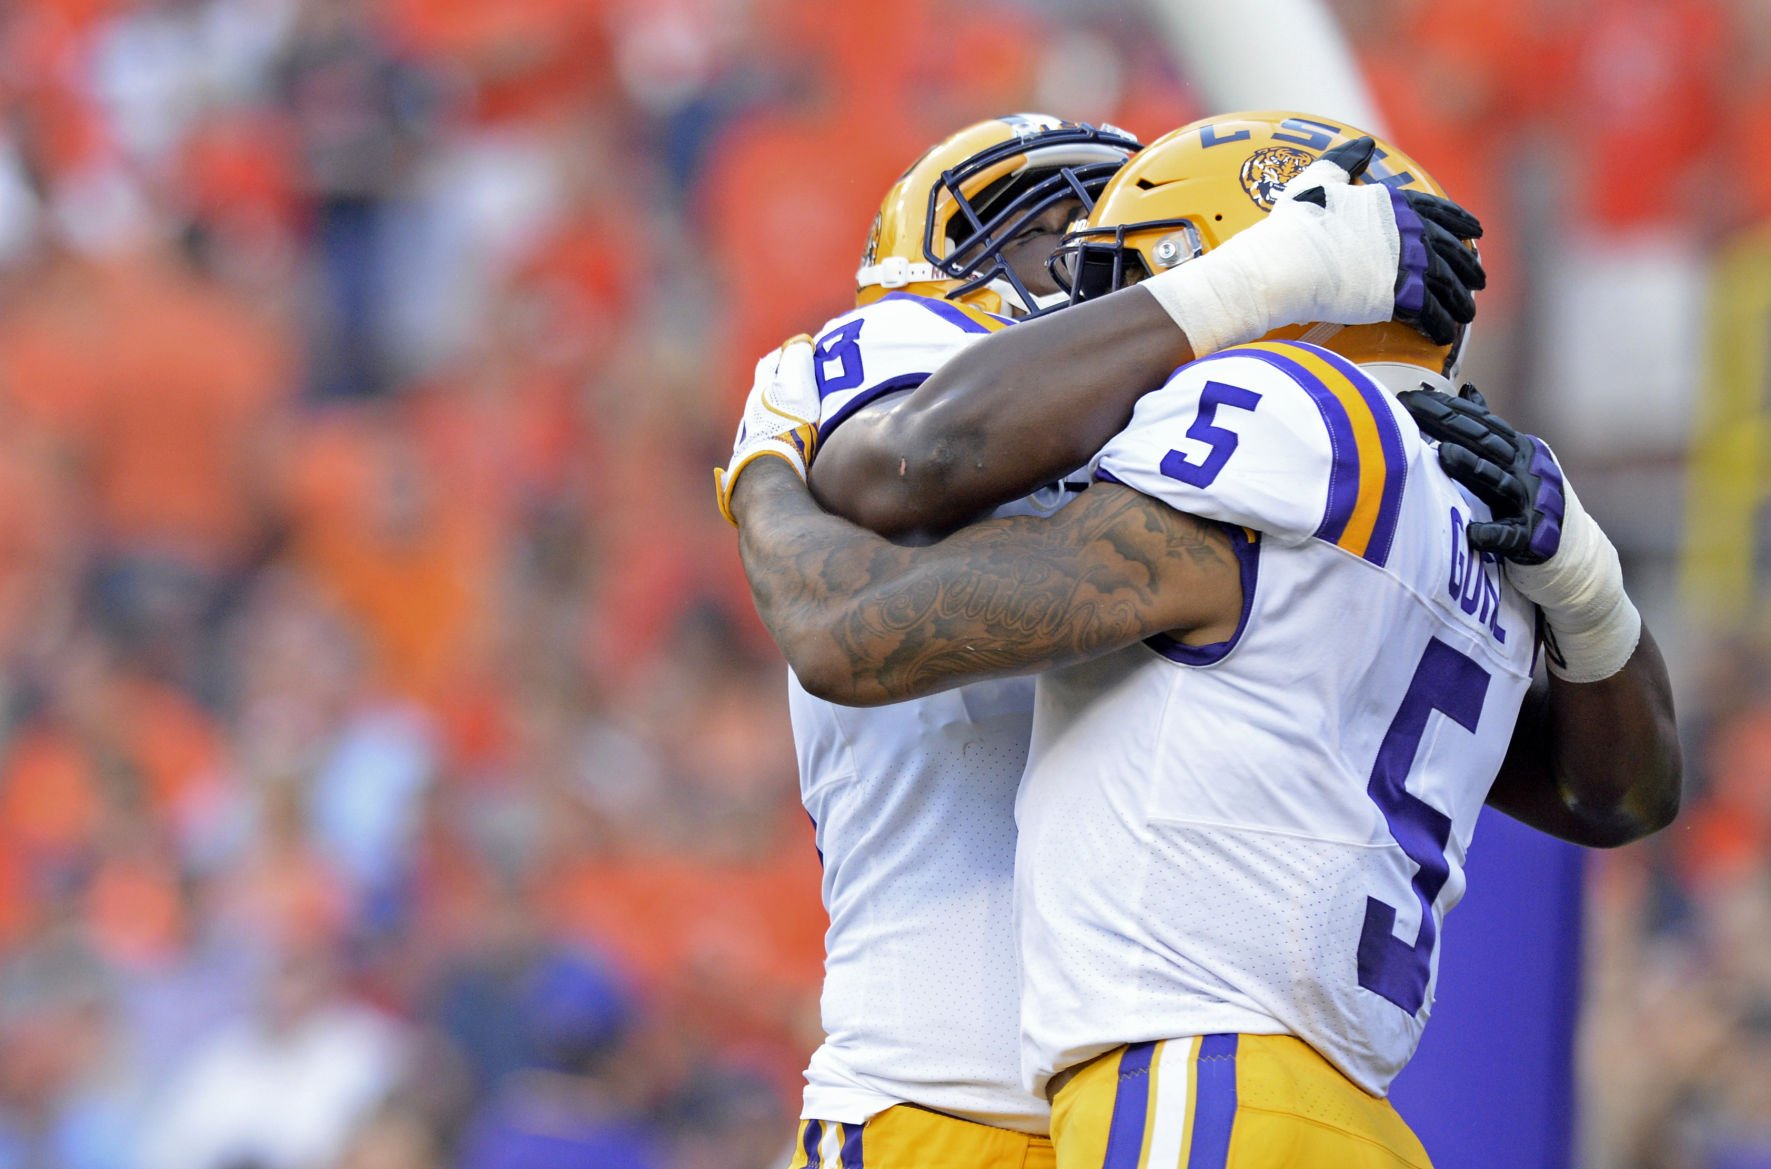 Troy Upset Finds Life In Death Valley